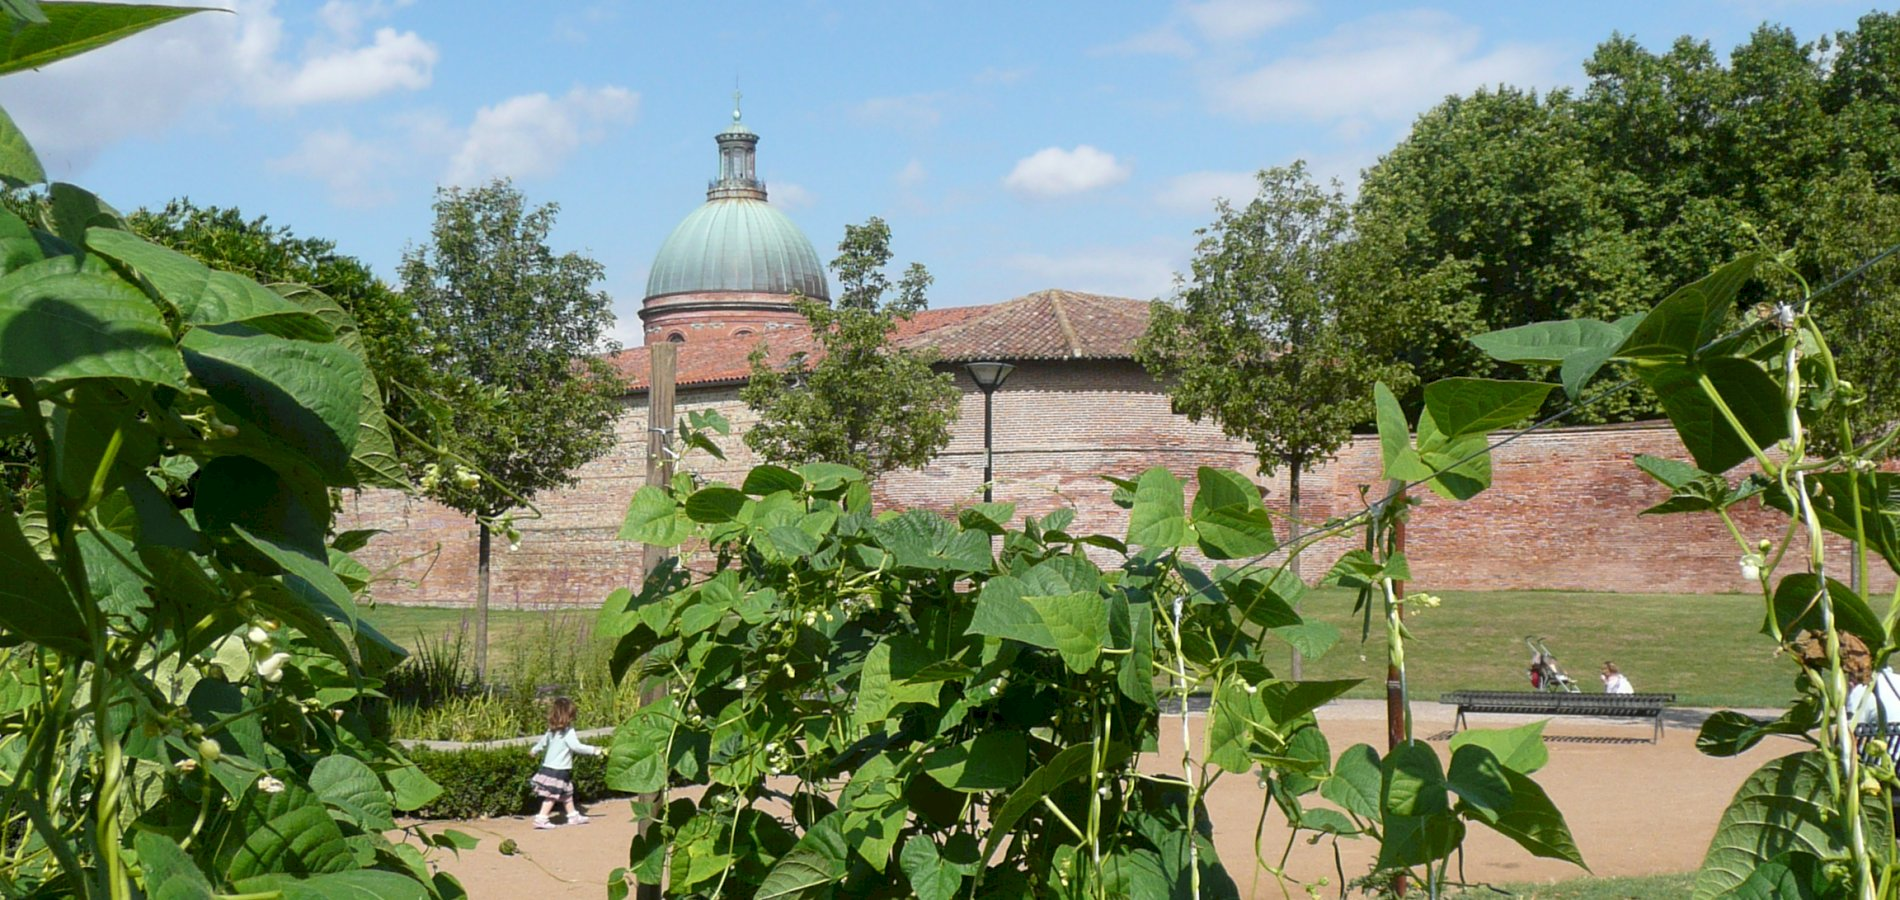 Ophorus Tours - From Sarlat la Canéda to Toulouse Private Sightseeing Transfer